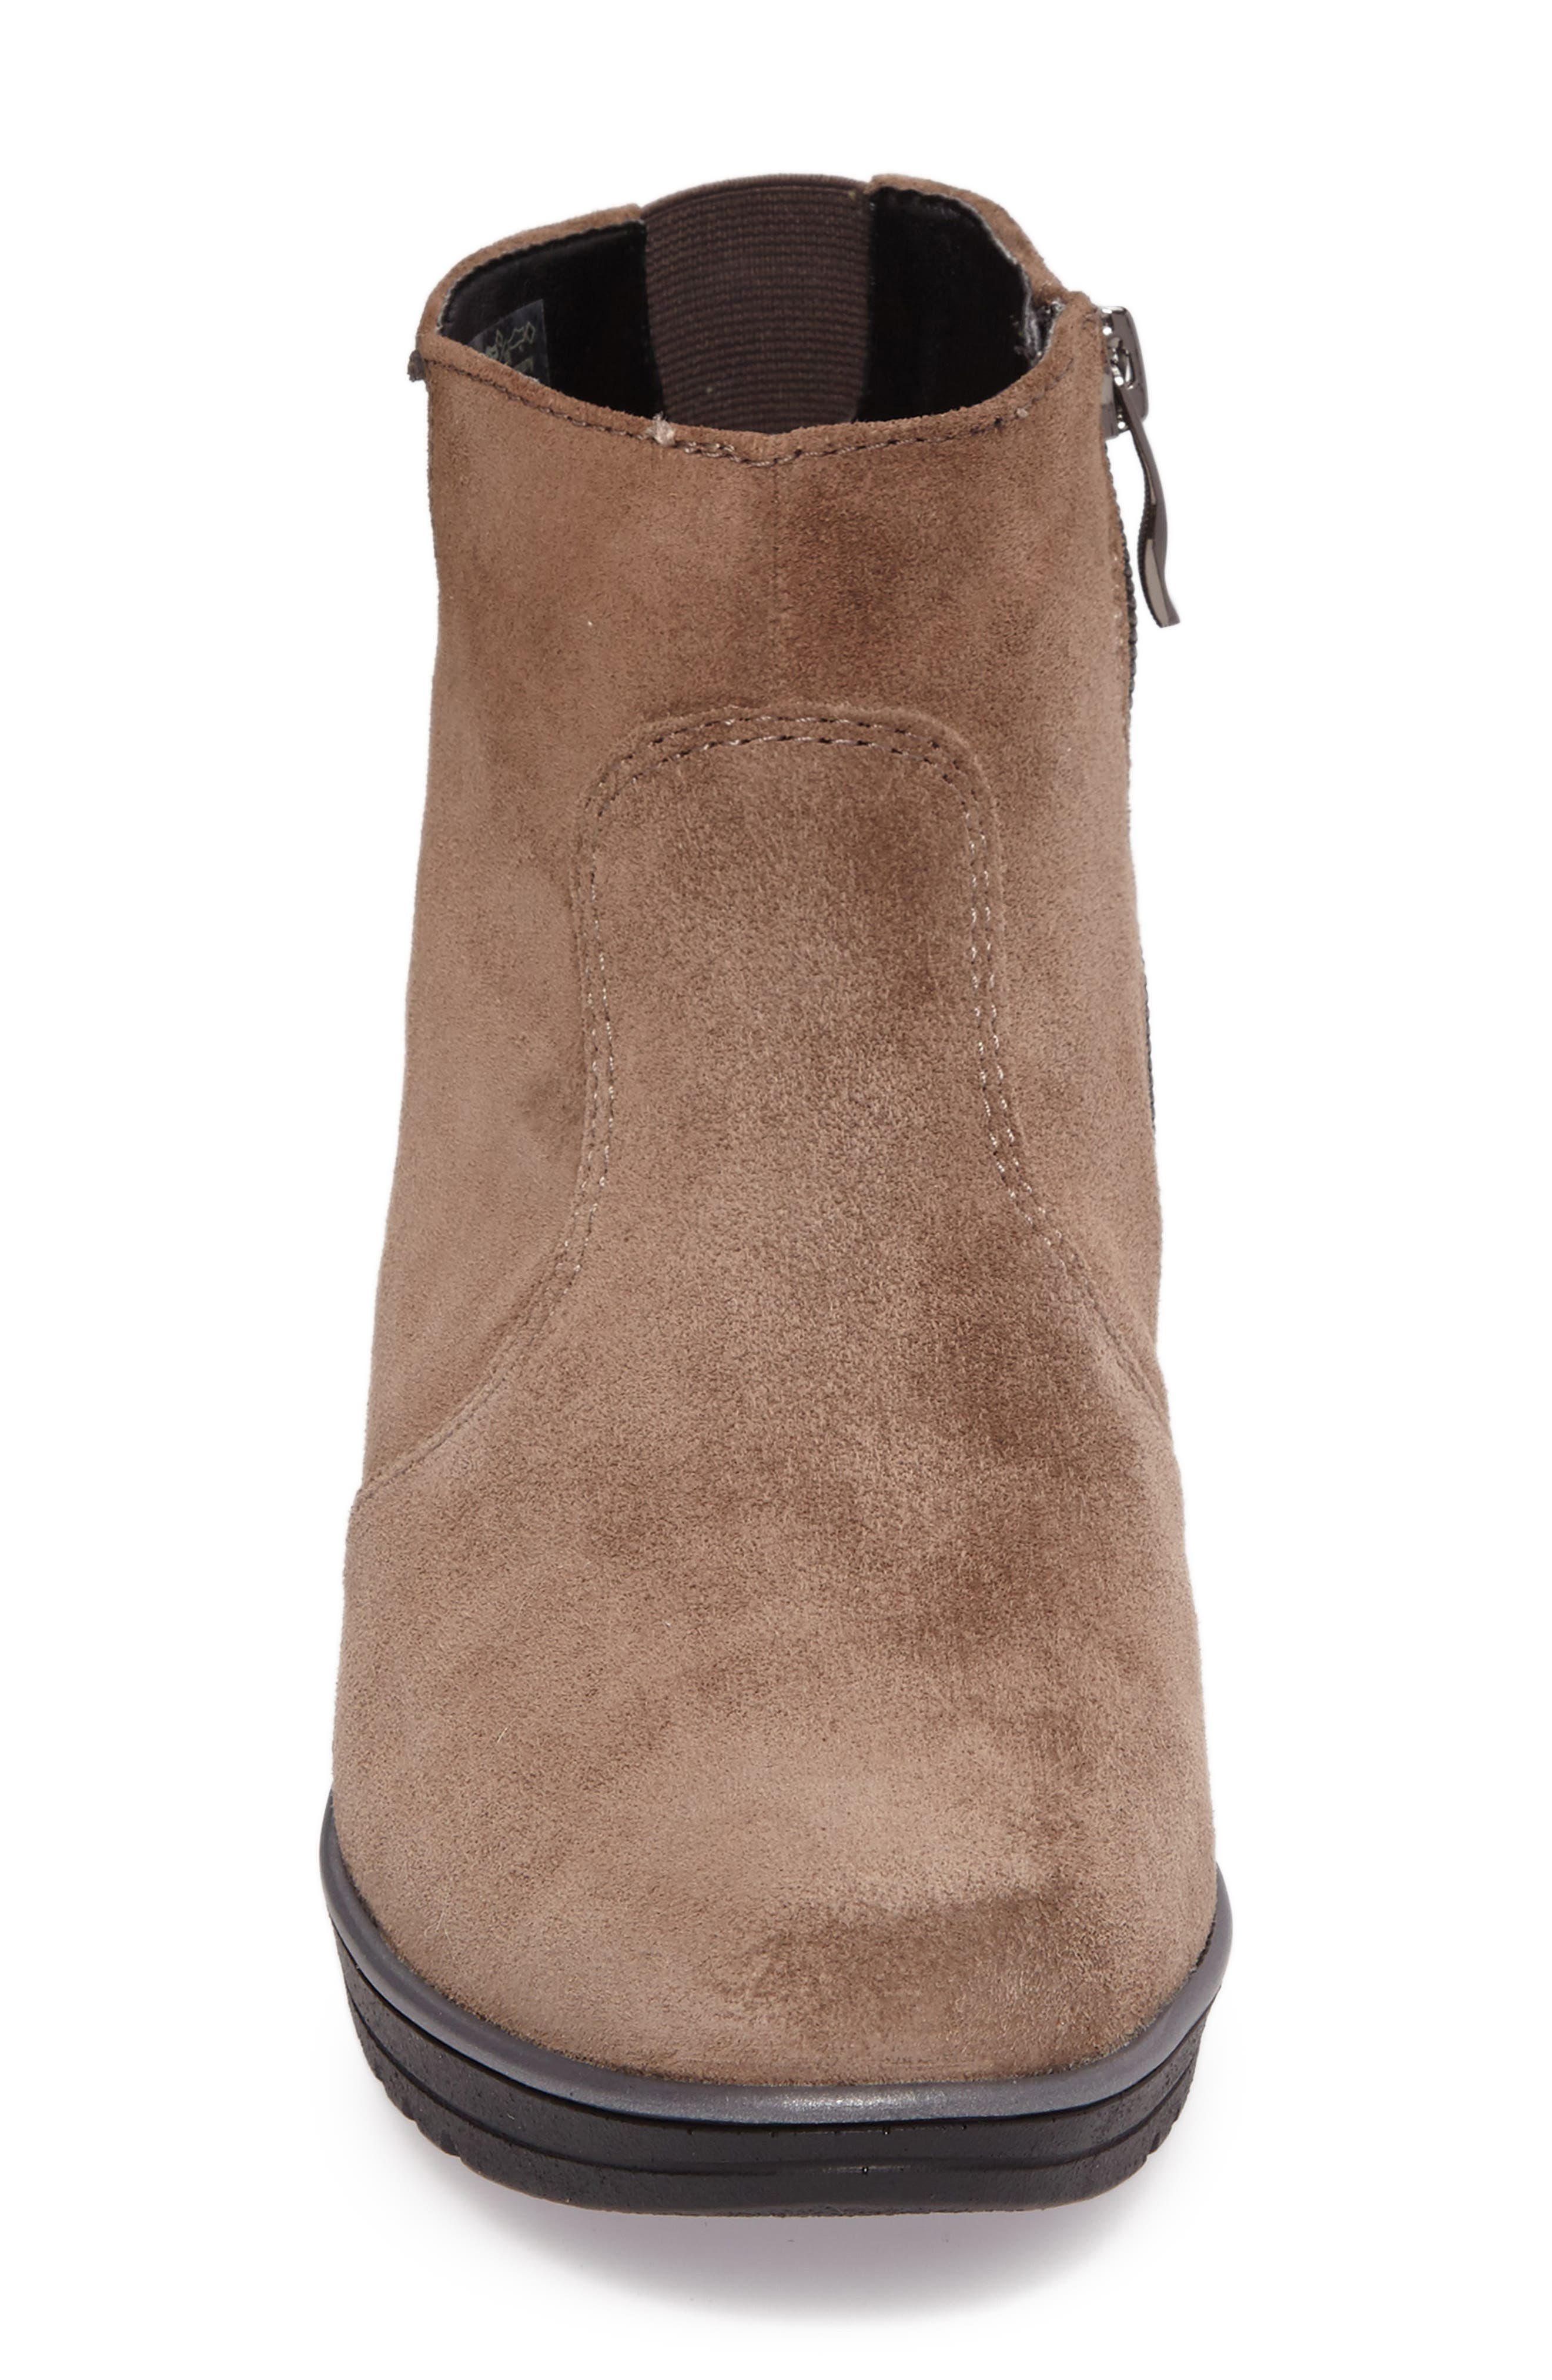 Hessa Wedge Bootie,                             Alternate thumbnail 4, color,                             Teak Suede